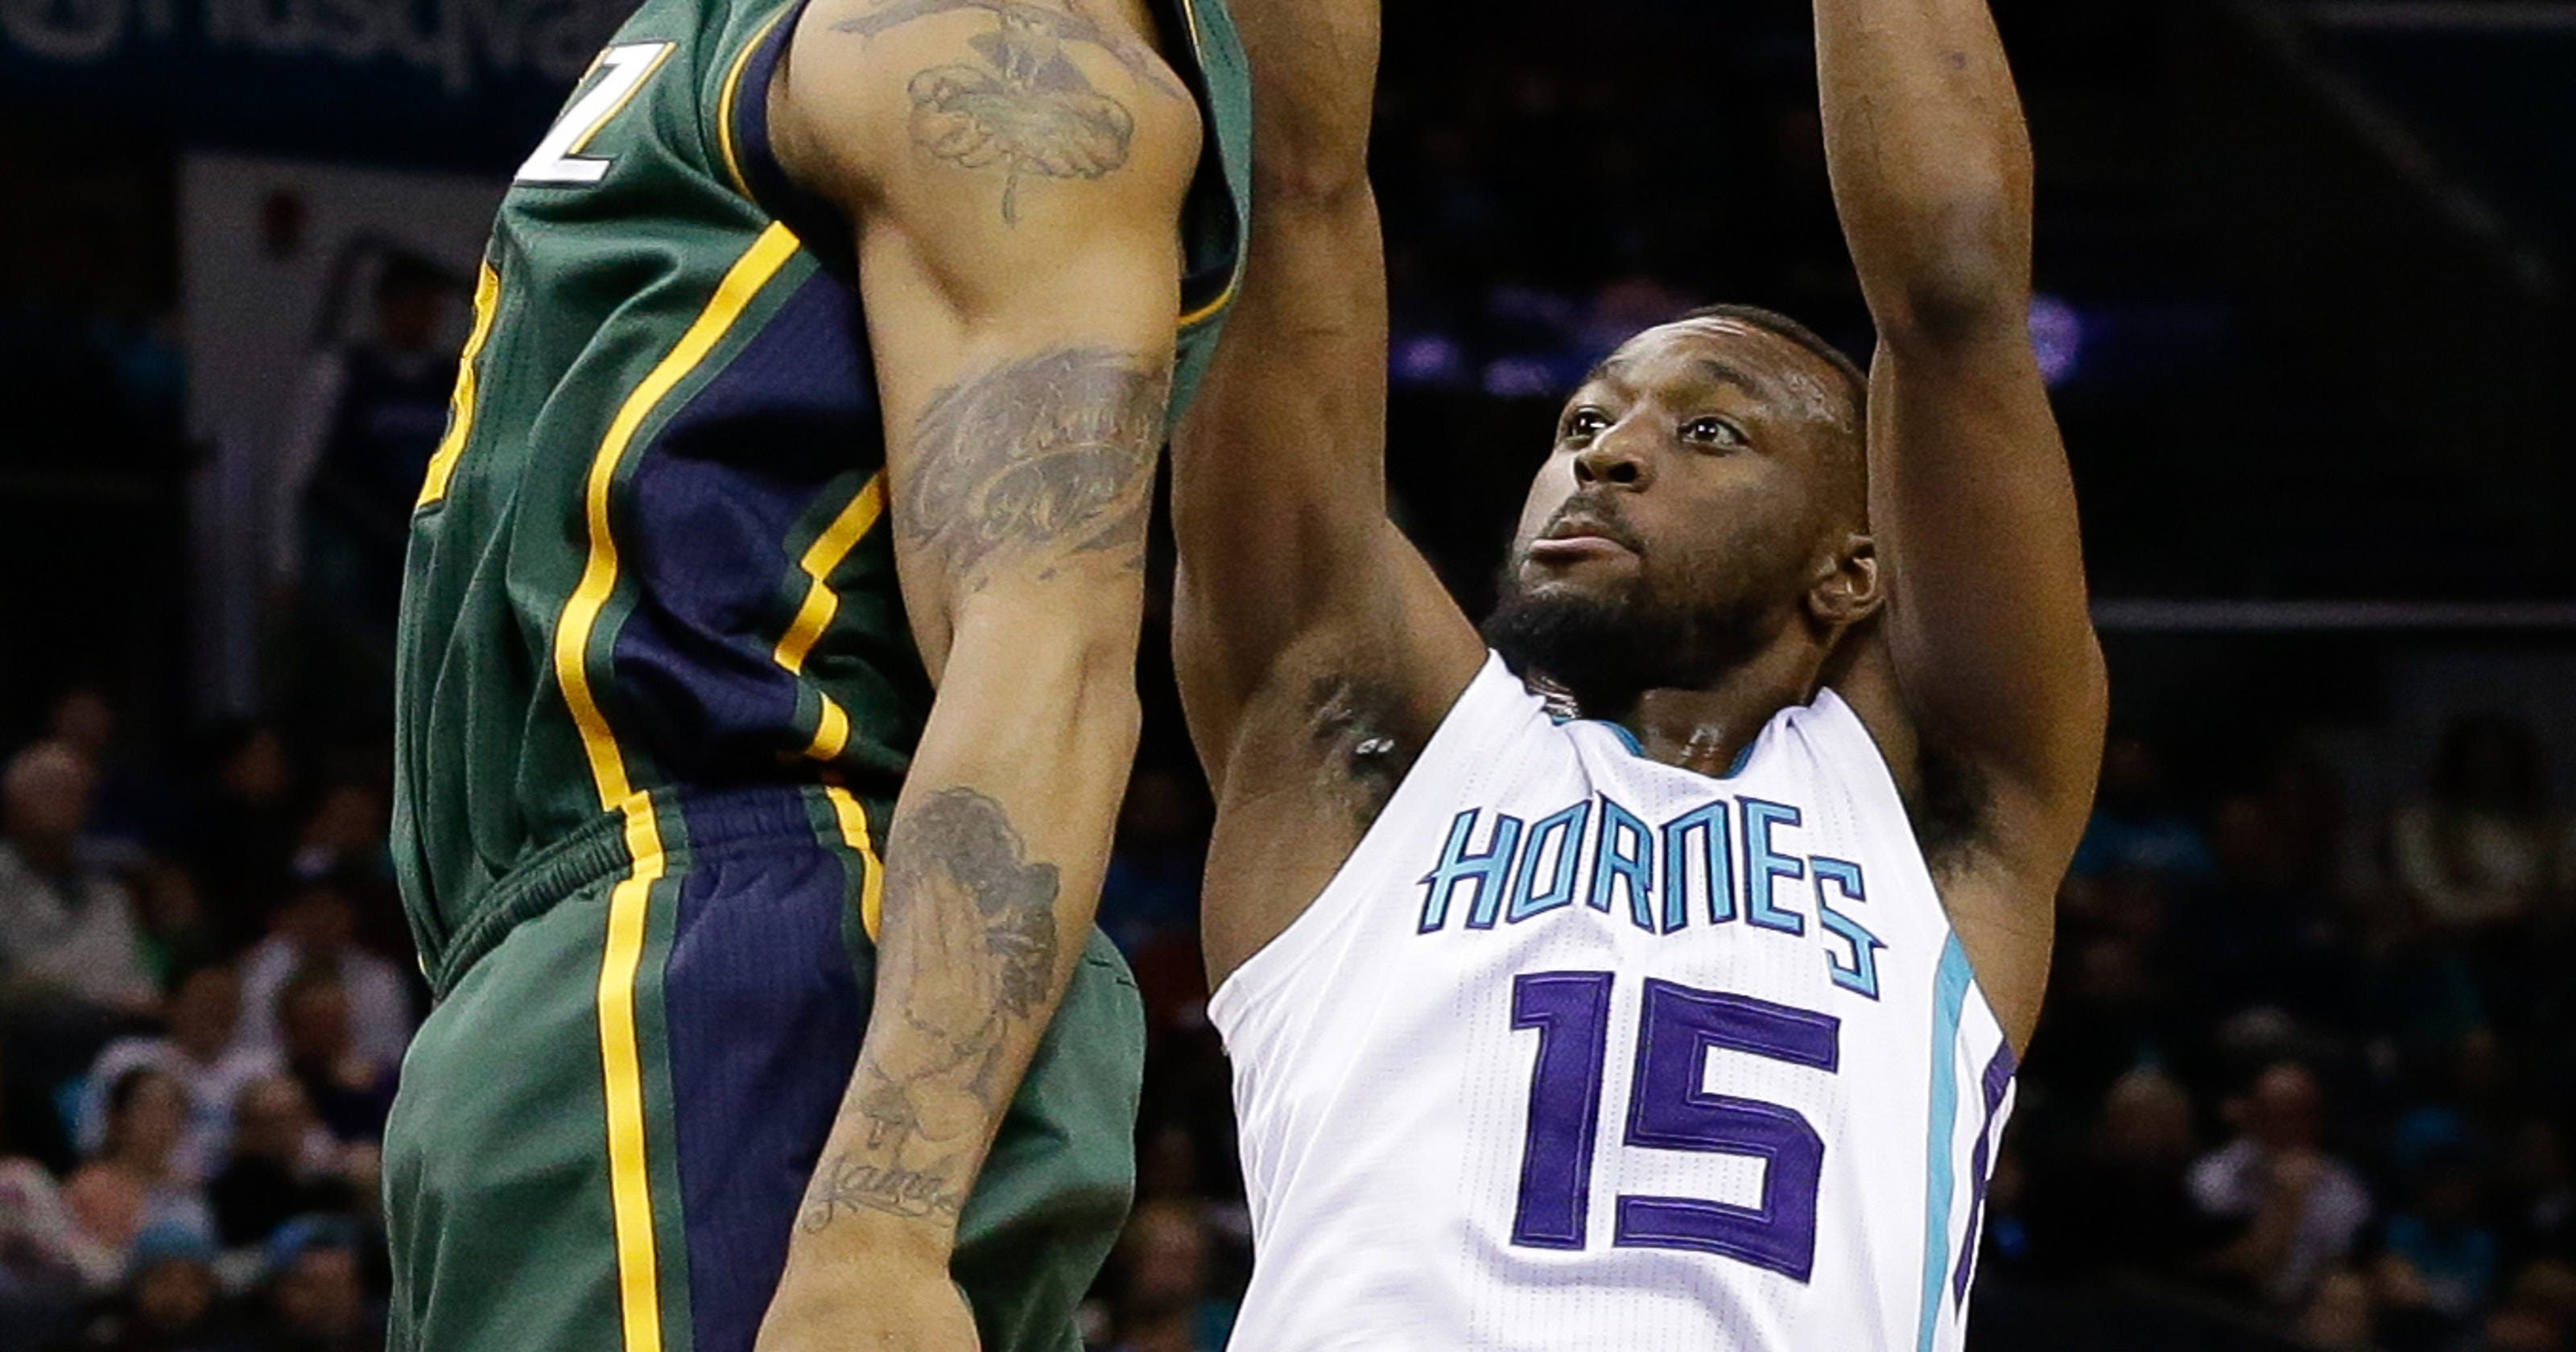 af838a463 Kemba Walker scores team-record 52 points in Hornets  2OT win over Jazz